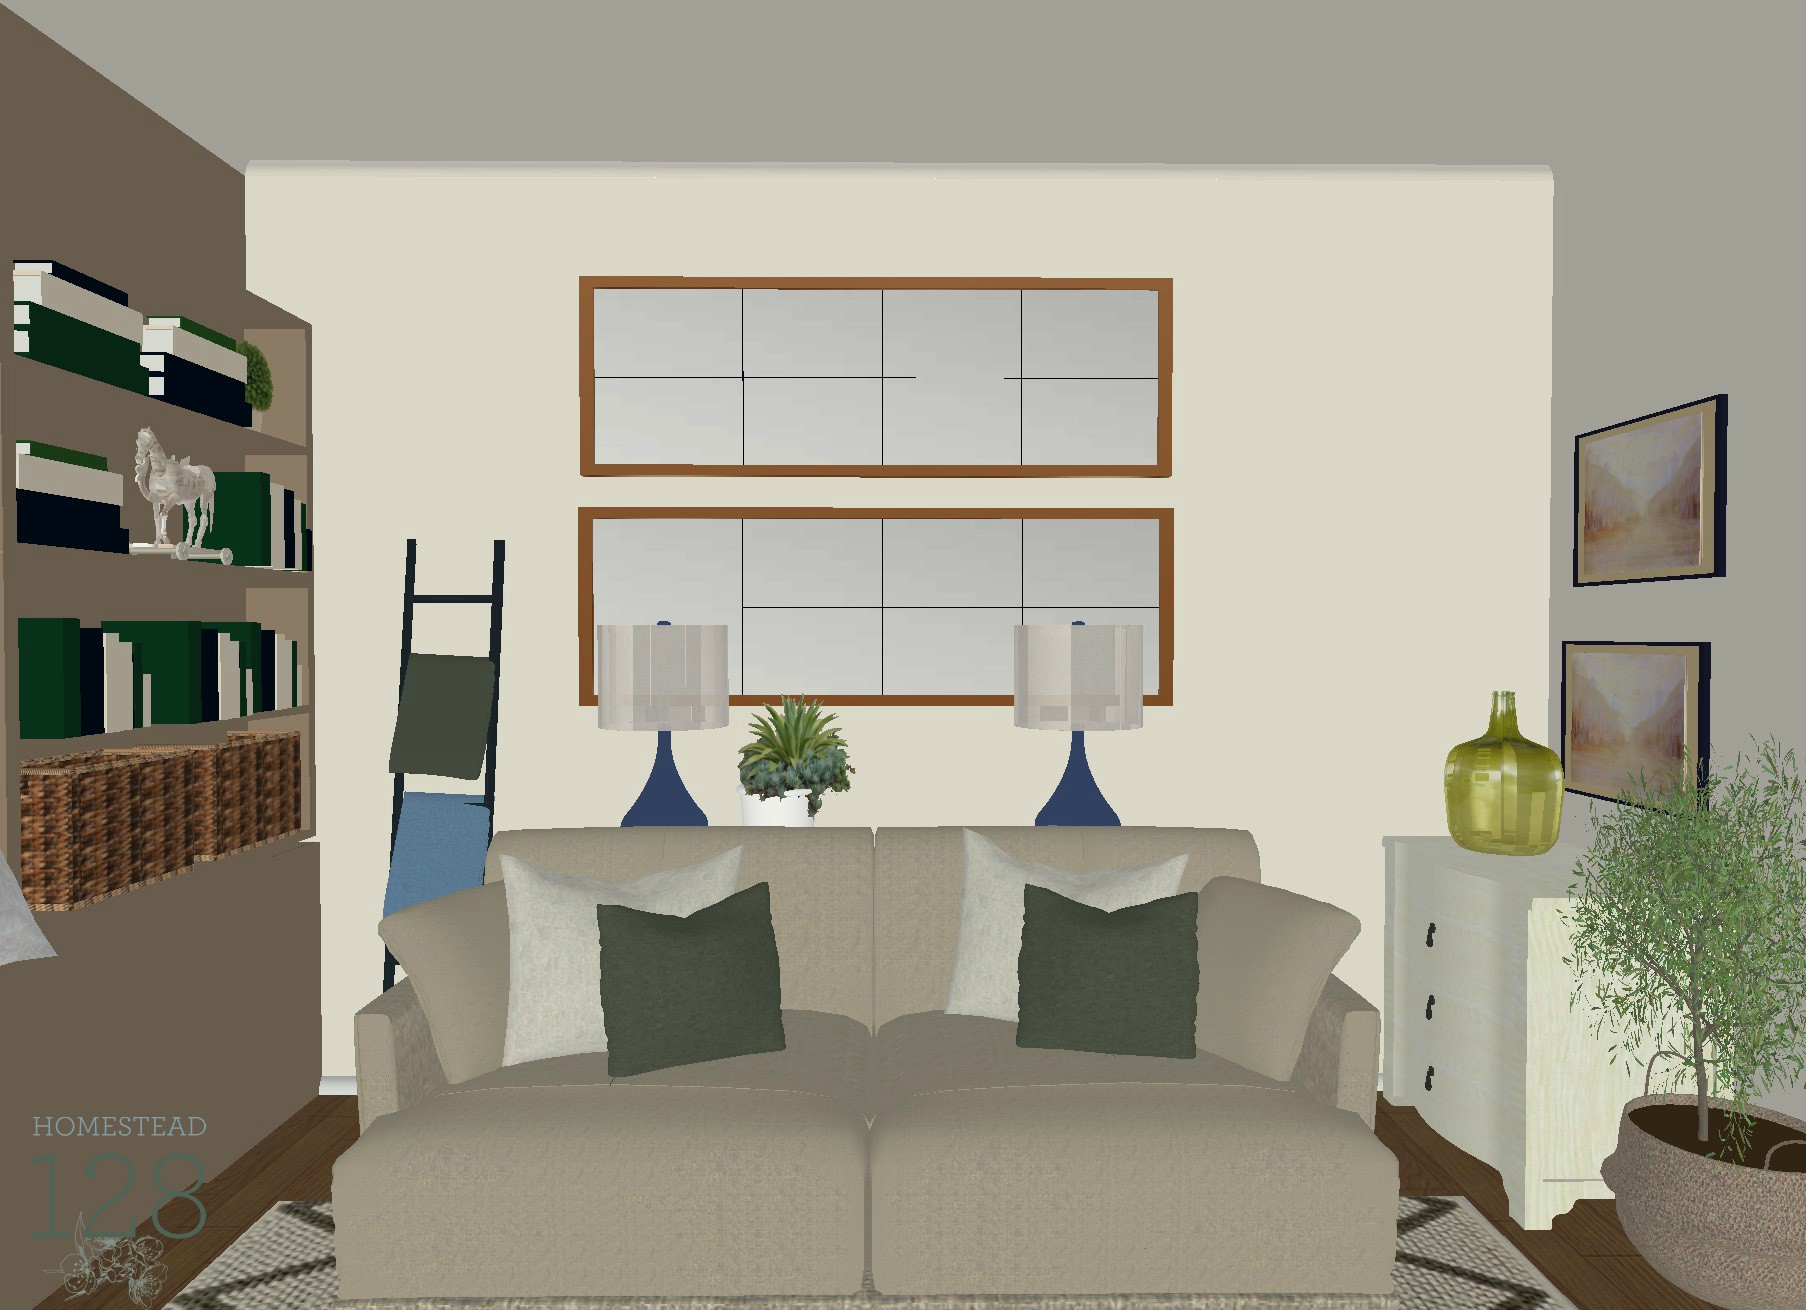 Traditional Living Room Design Plan with Neutrals, Blues And Greens.